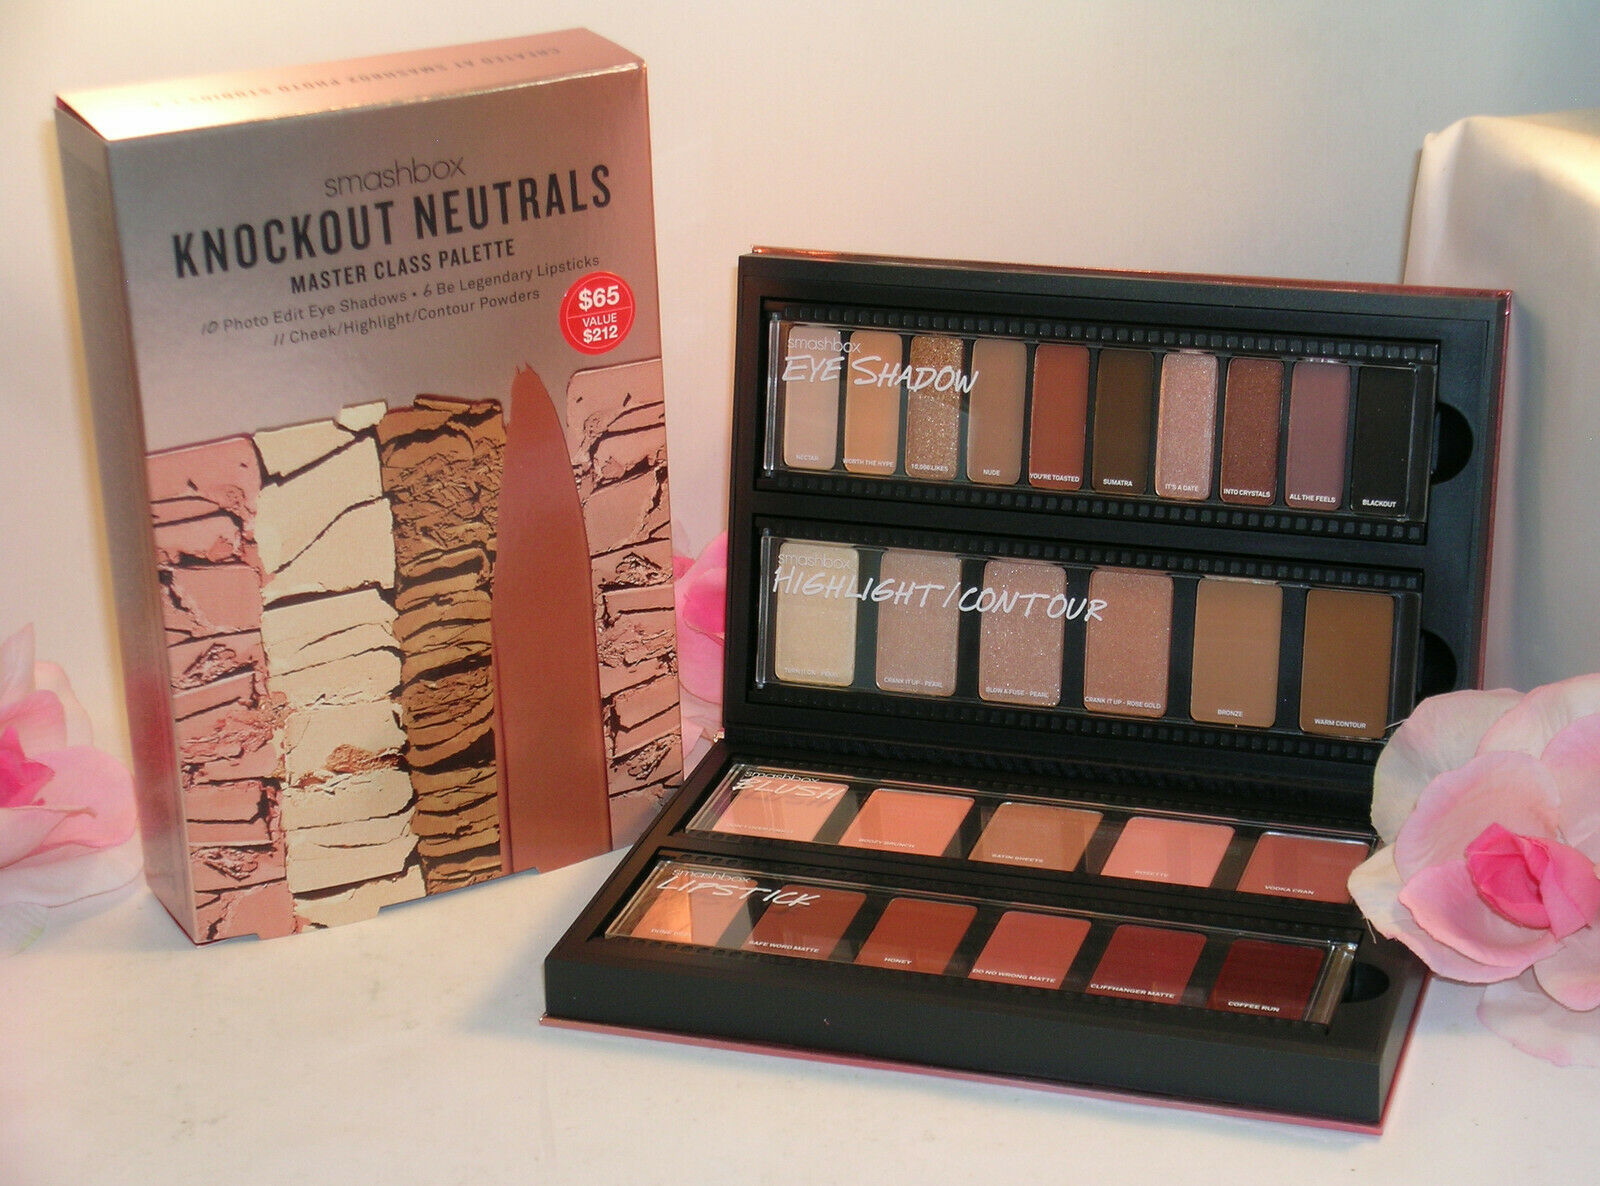 Primary image for New Smashbox Knockout Neutrals Master Class Palette 27  Shades Eyes Cheeks Lips